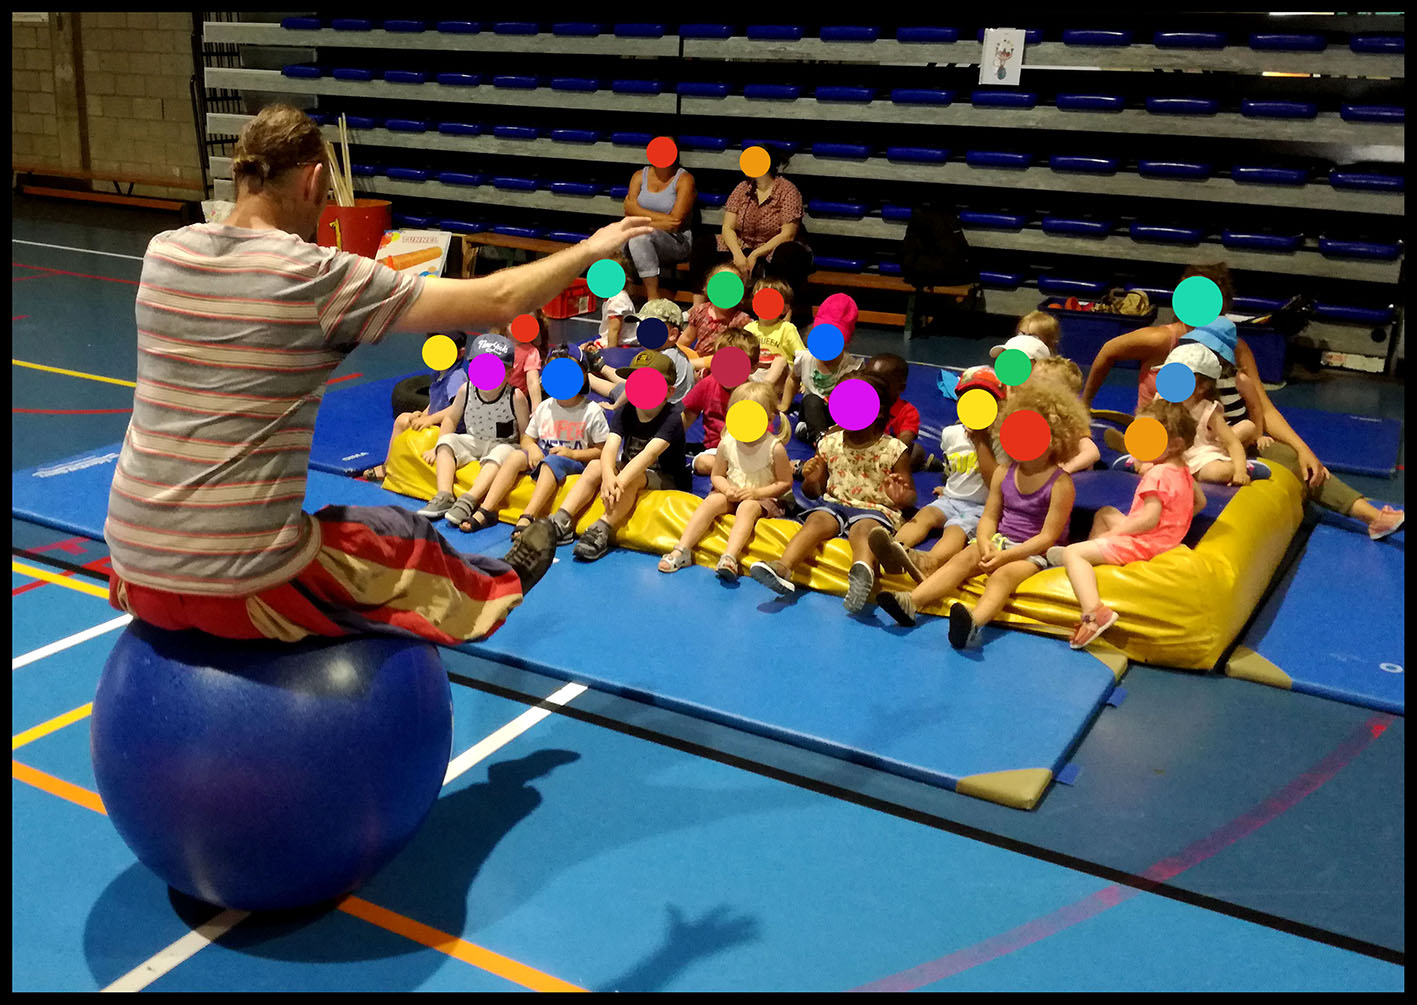 Animations-Ateliers - Cirque - Spectacle - Jongle - Cirque - Liege  (1).jpg